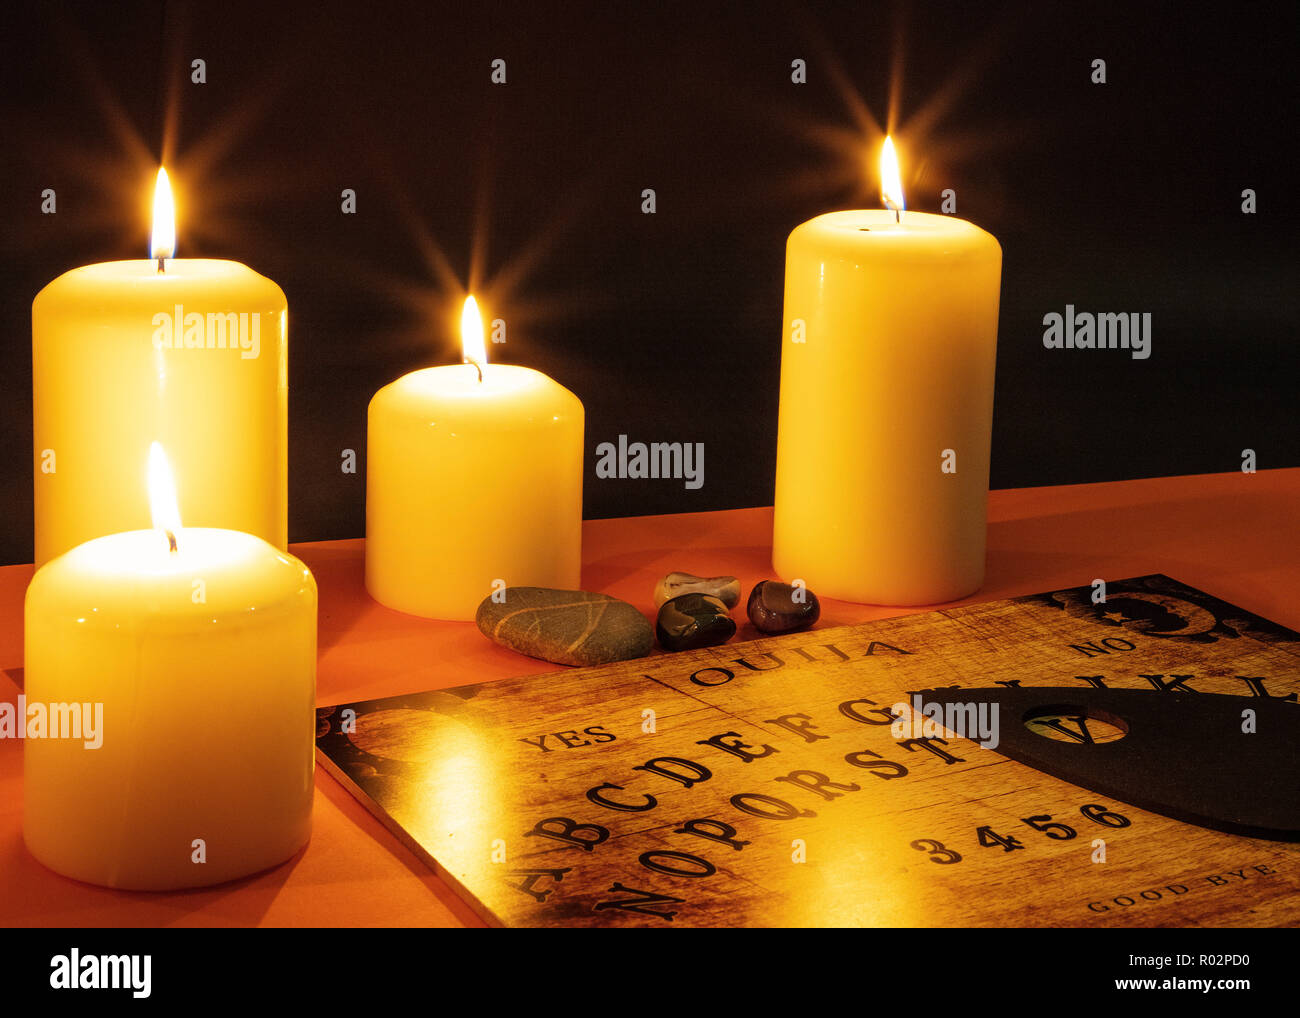 Ouija board in a darkened, candlelit scary room - Stock Image